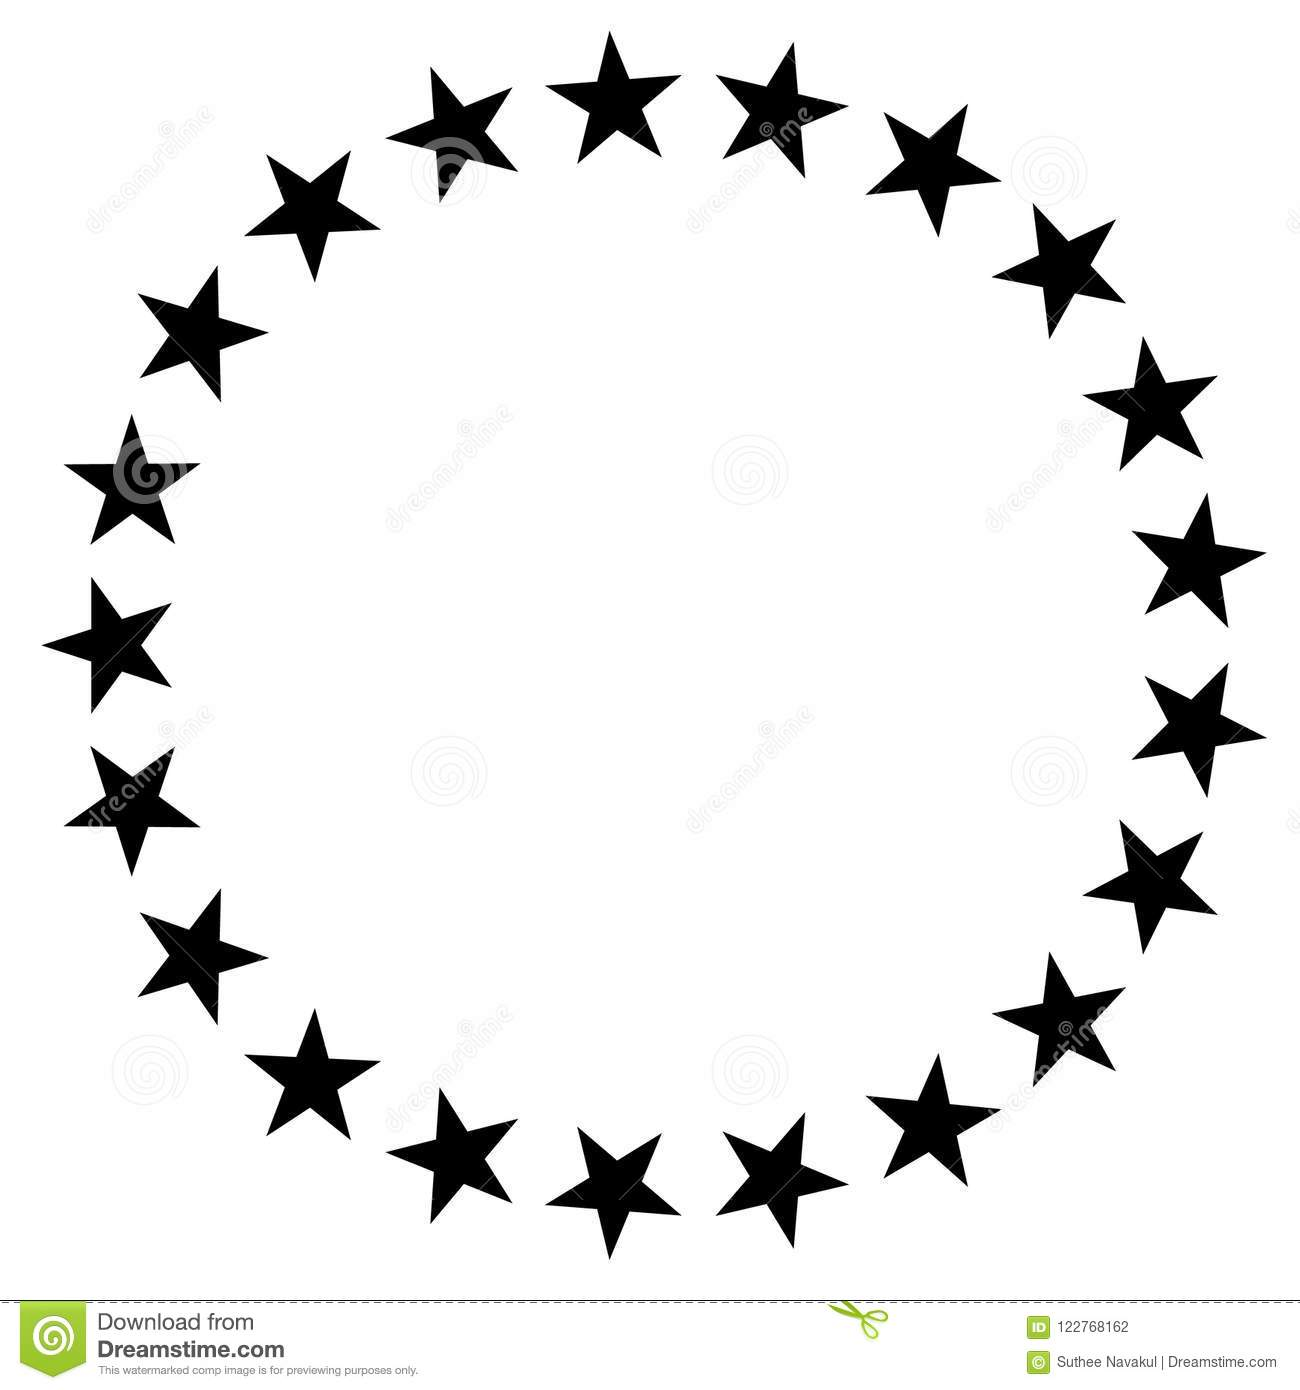 hight resolution of stars in circle icon on white background stars in circle design for diagram infographics chart presentation app ui flat style stars border frame